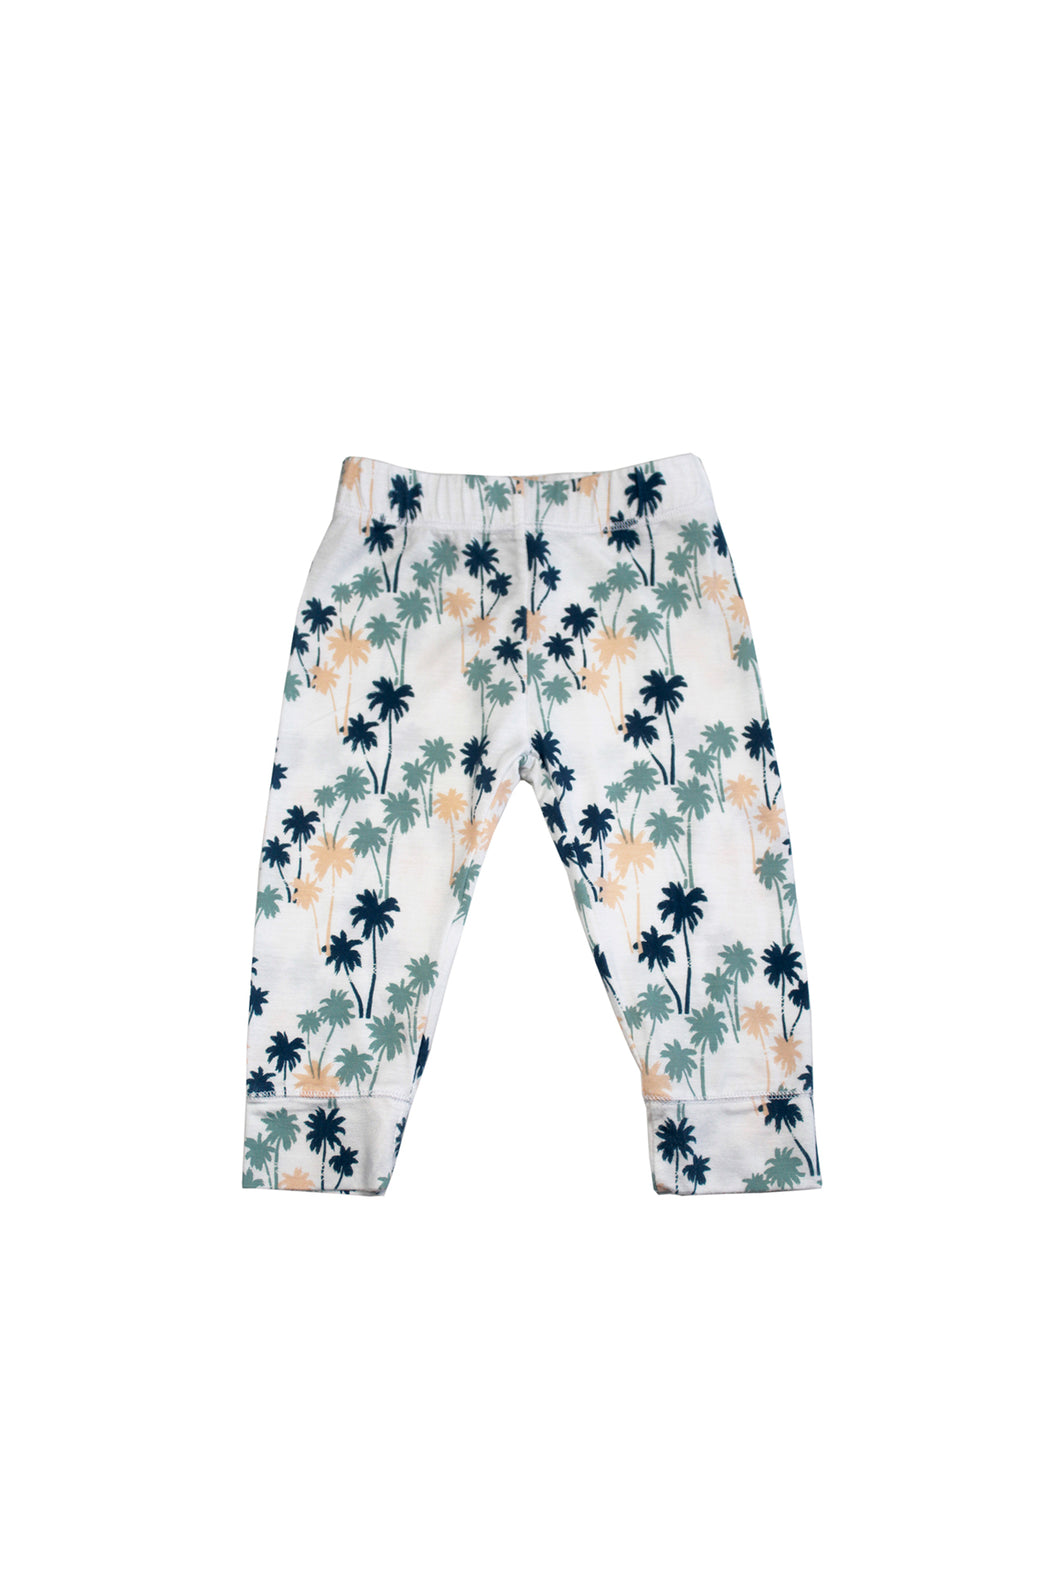 SKYE HI | Leggings | Palm